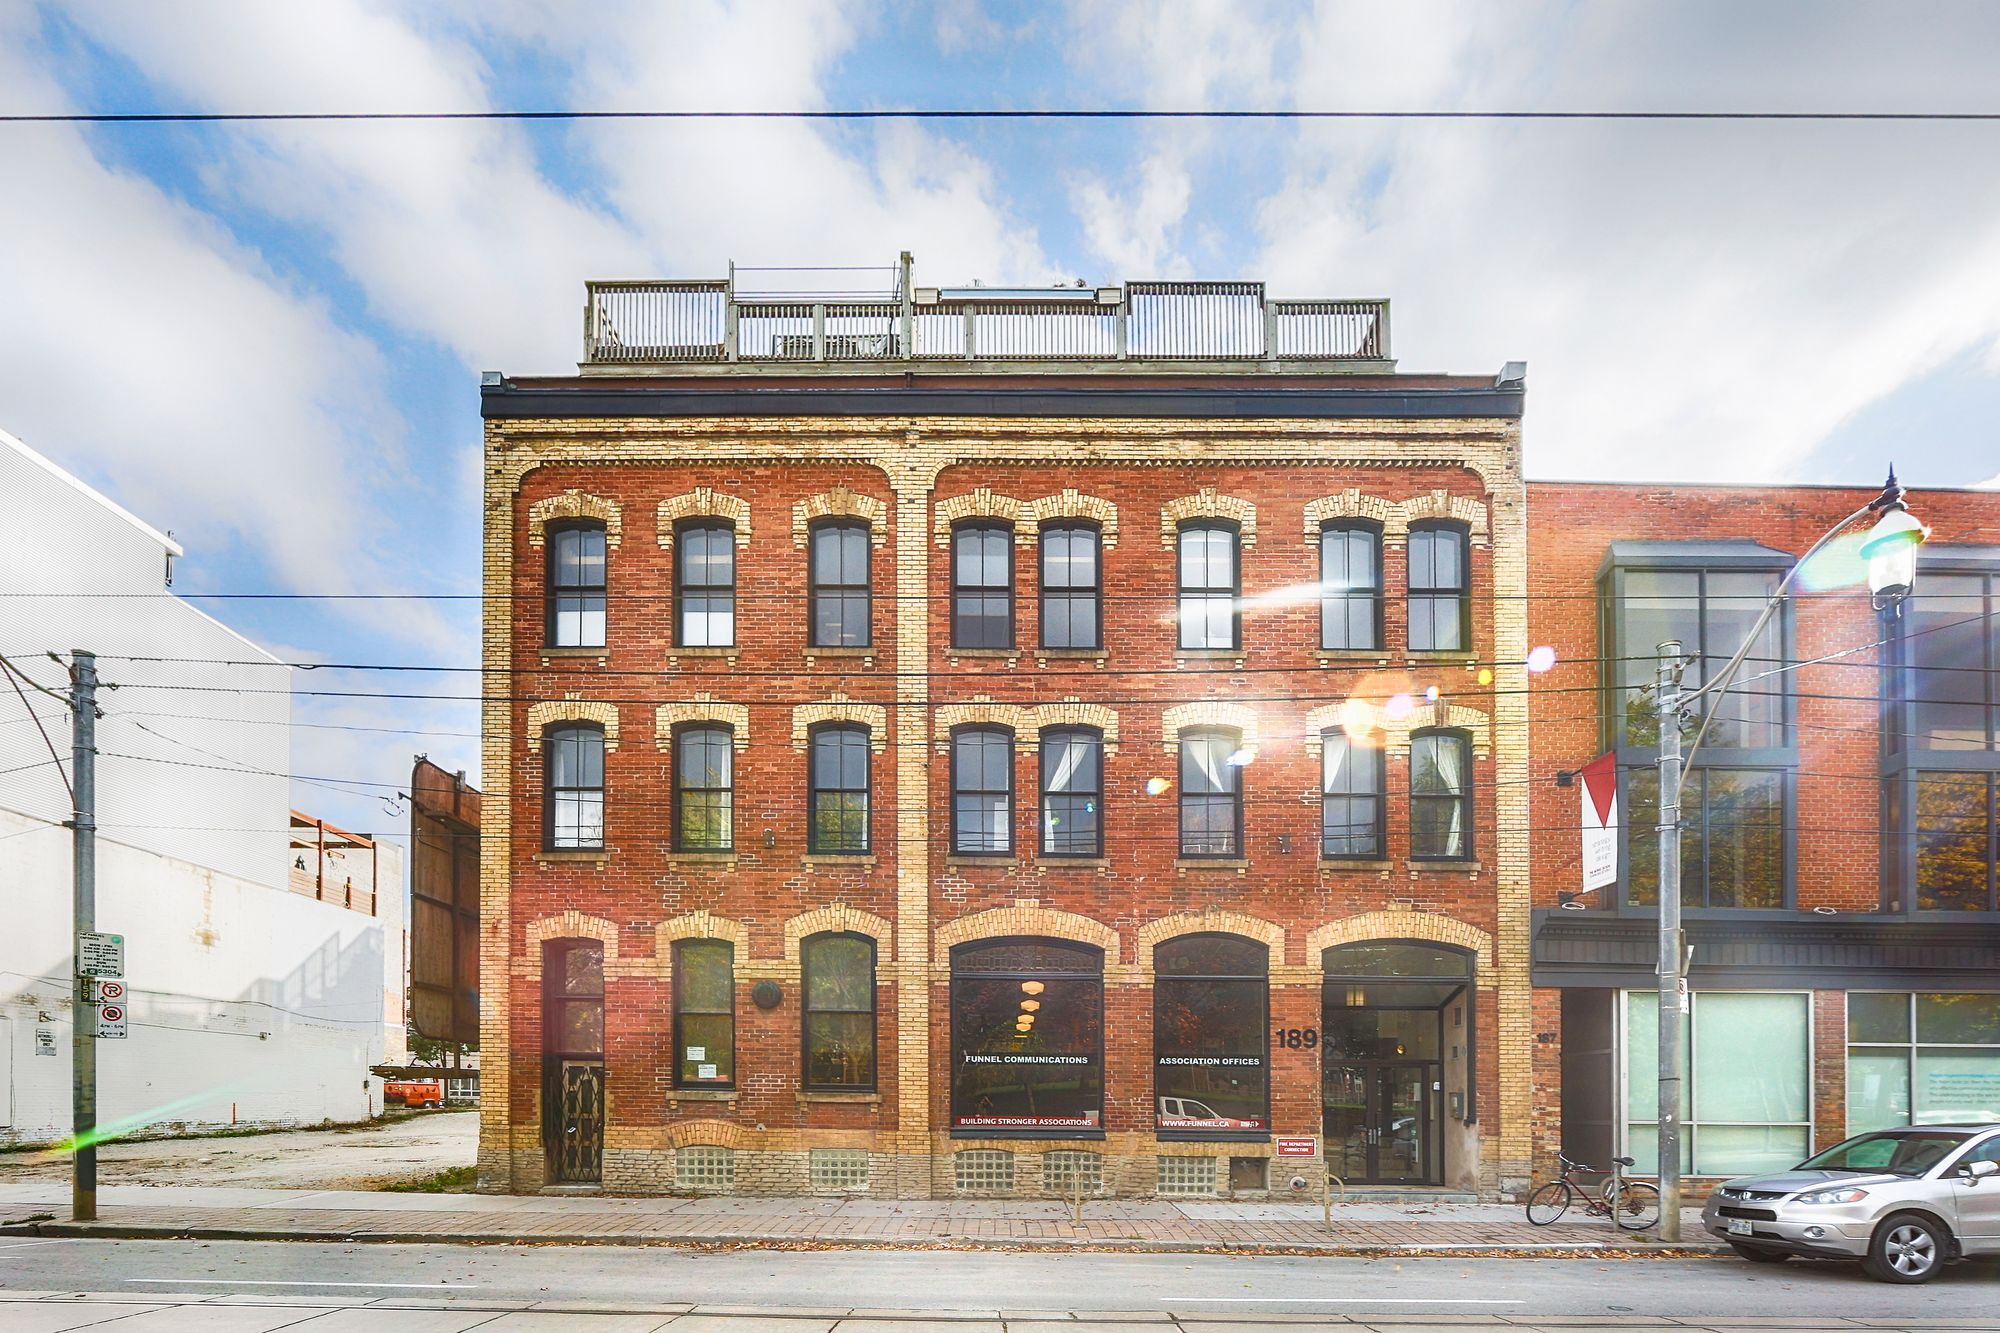 189 Queen St E. This loft at Boiler Factory Lofts is located in  Downtown, Toronto - image #2 of 4 by Strata.ca